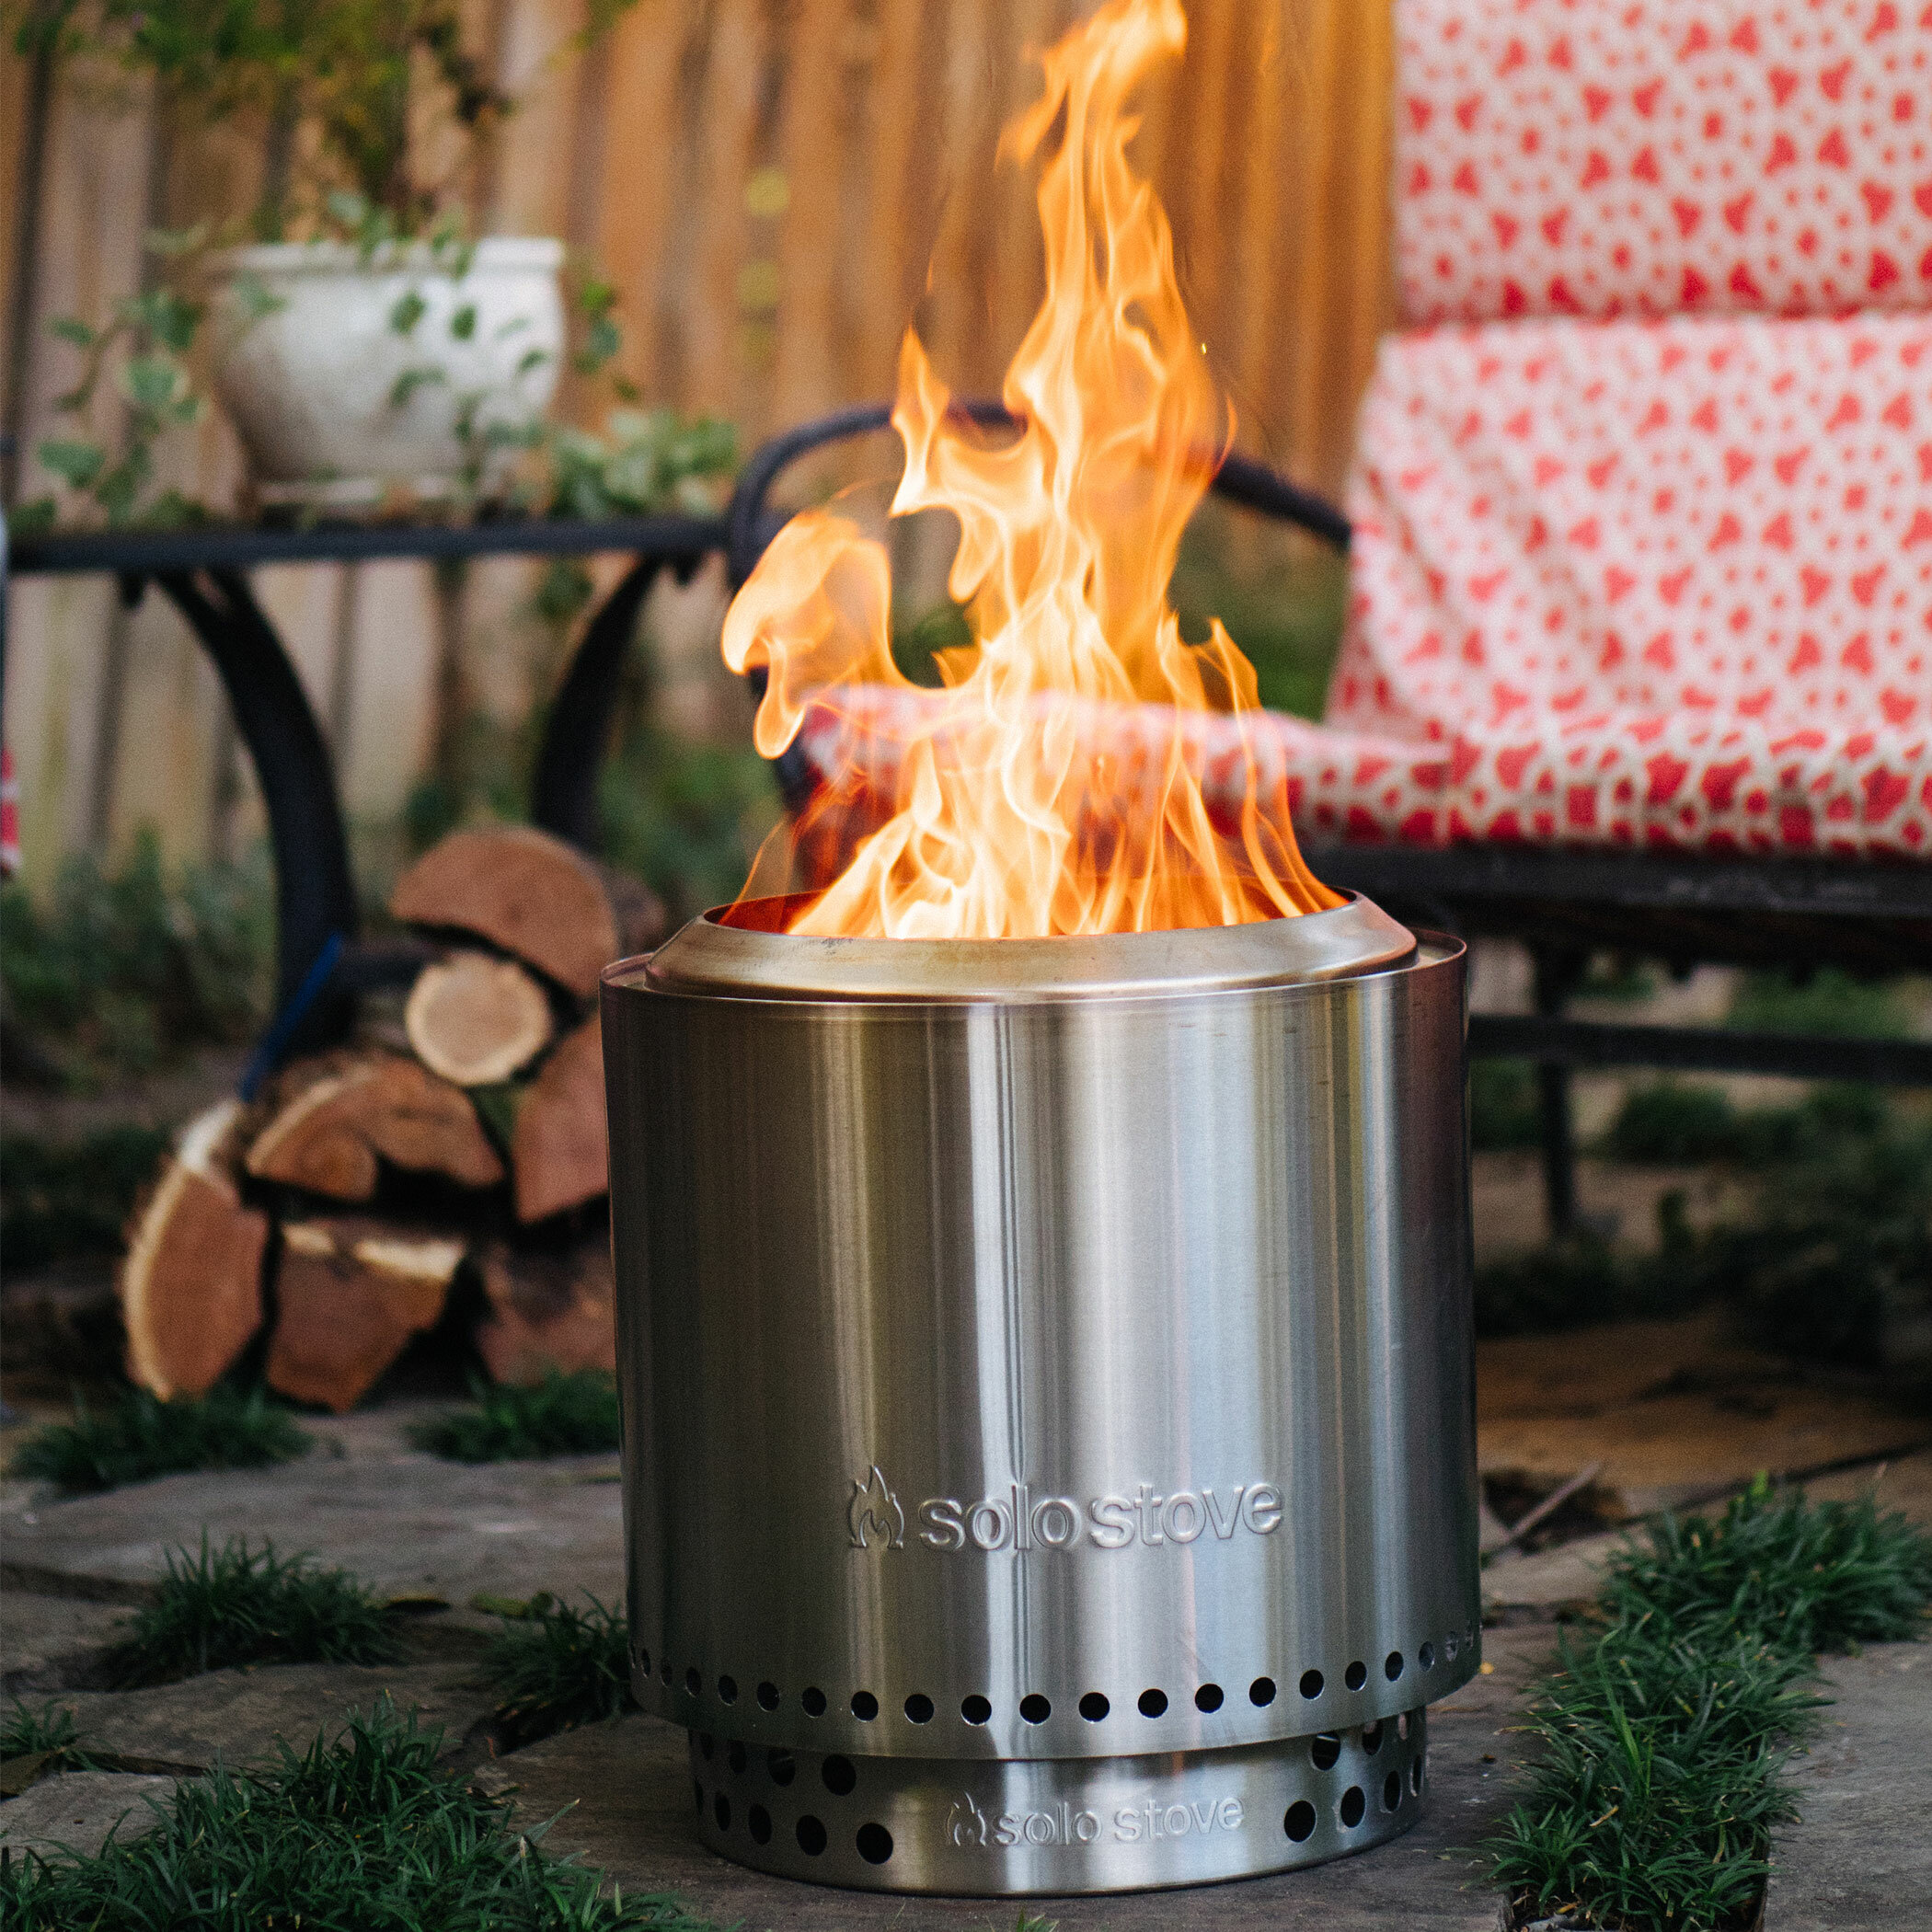 Solo Stove Ranger Stainless Steel Wood Burning Fire Pit With Ranger Stand Reviews